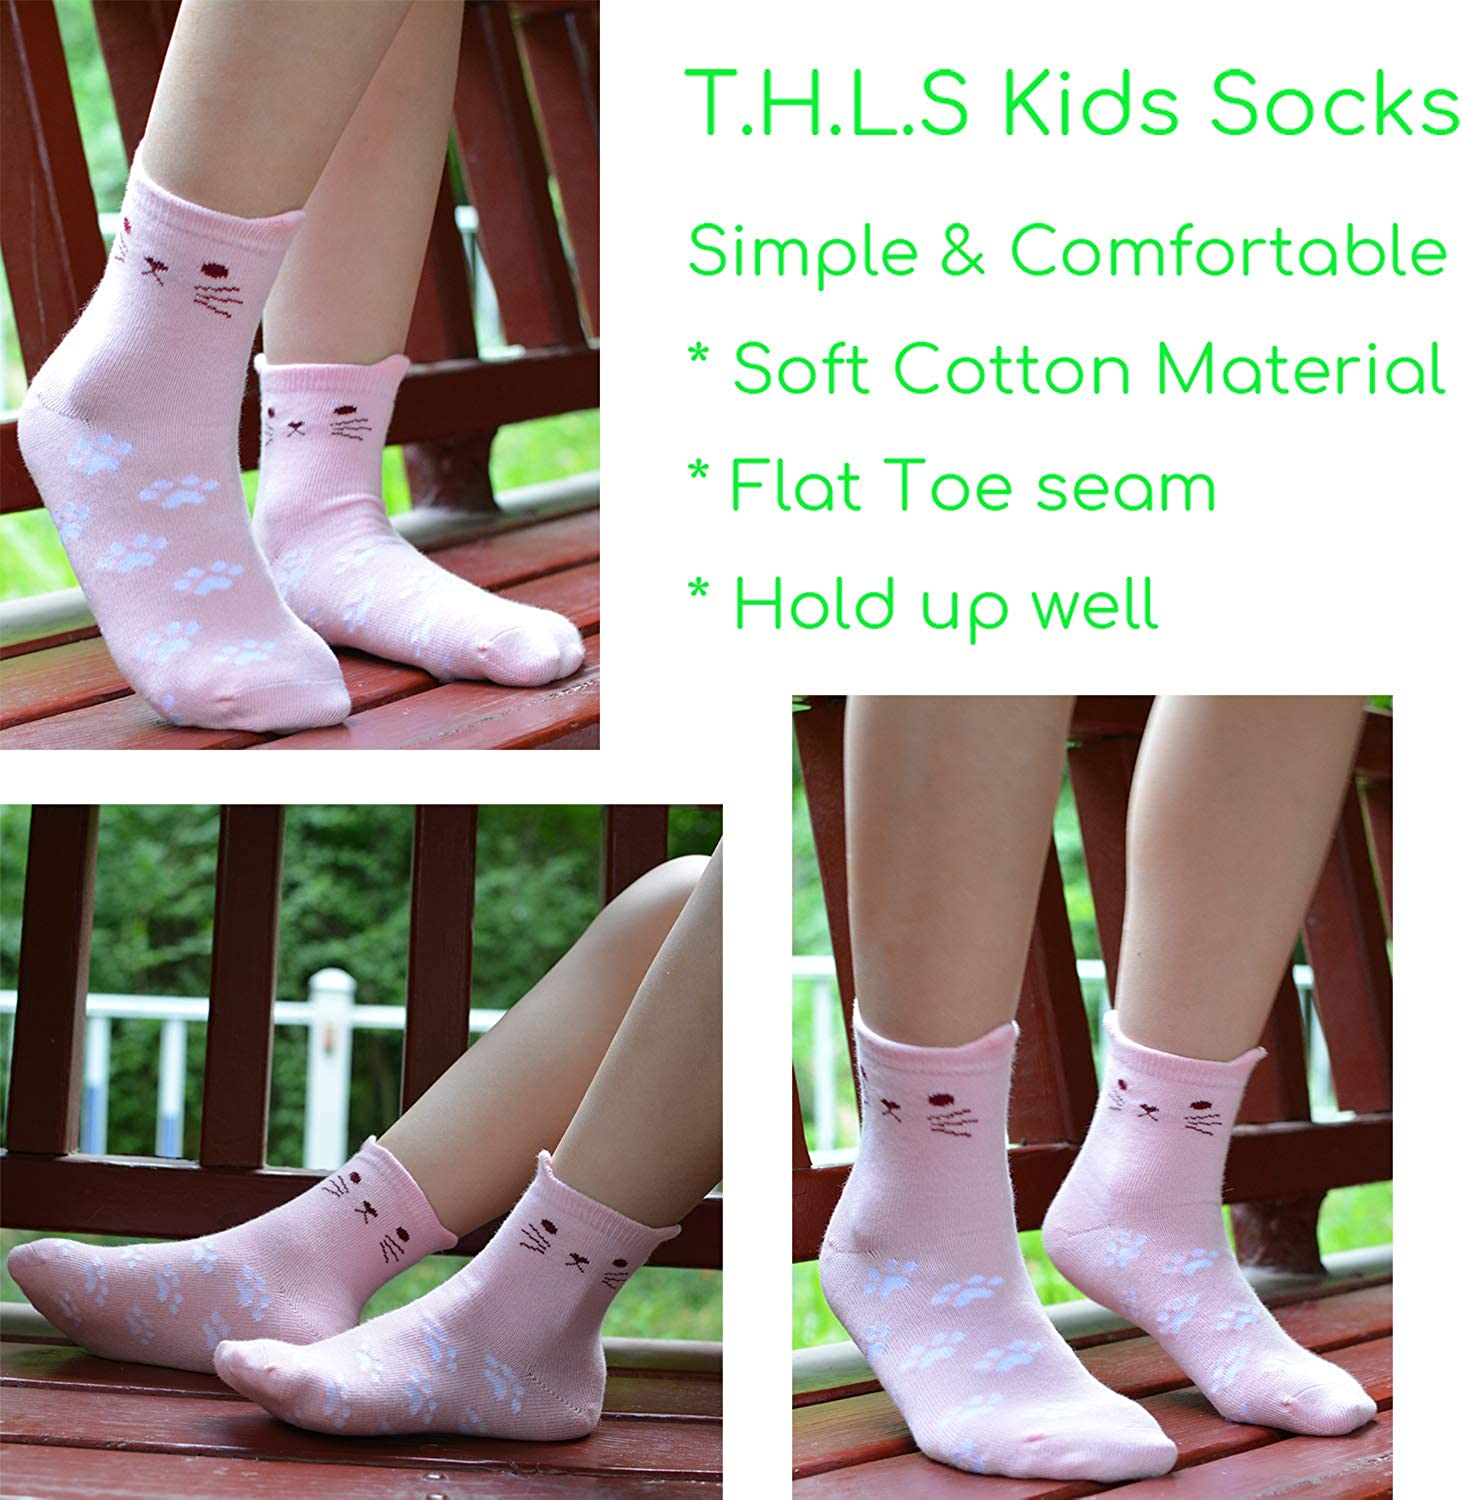 baby boys knee high cotton socks with flat toe seam for sensitive feet toddlers